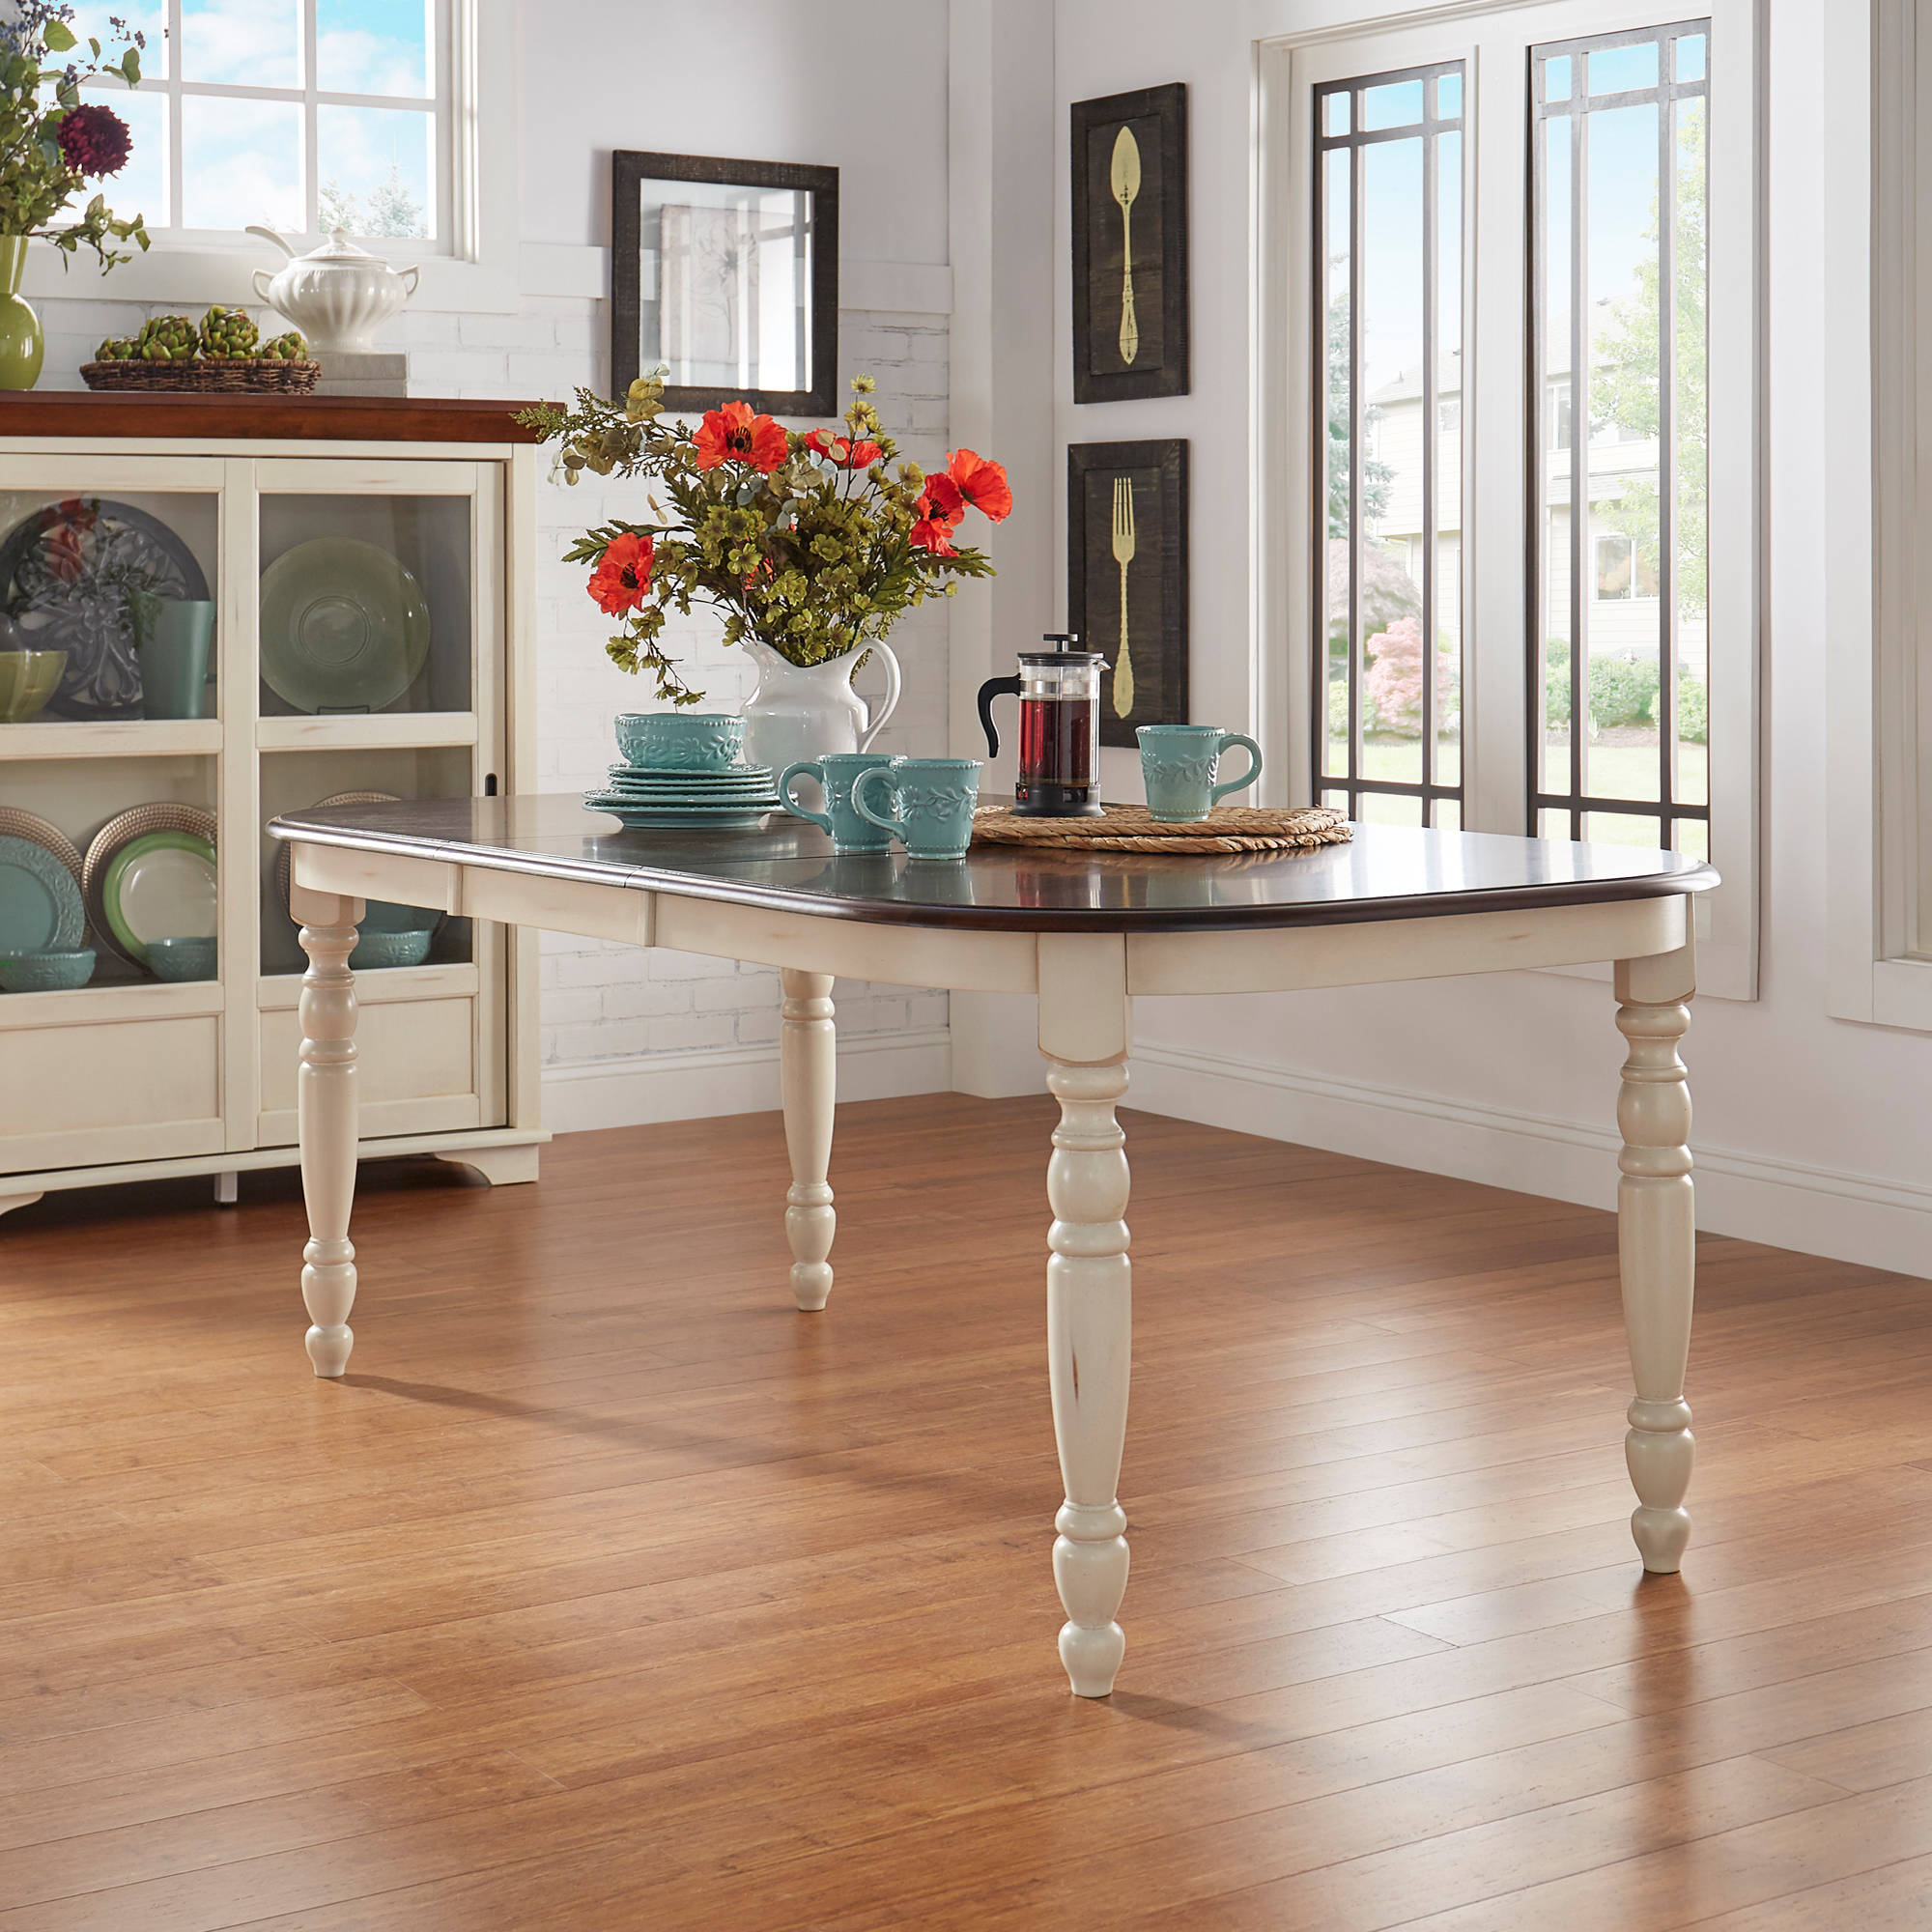 Weston Home Two Tone Dining Table, Antique White U0026 Warm Cherry